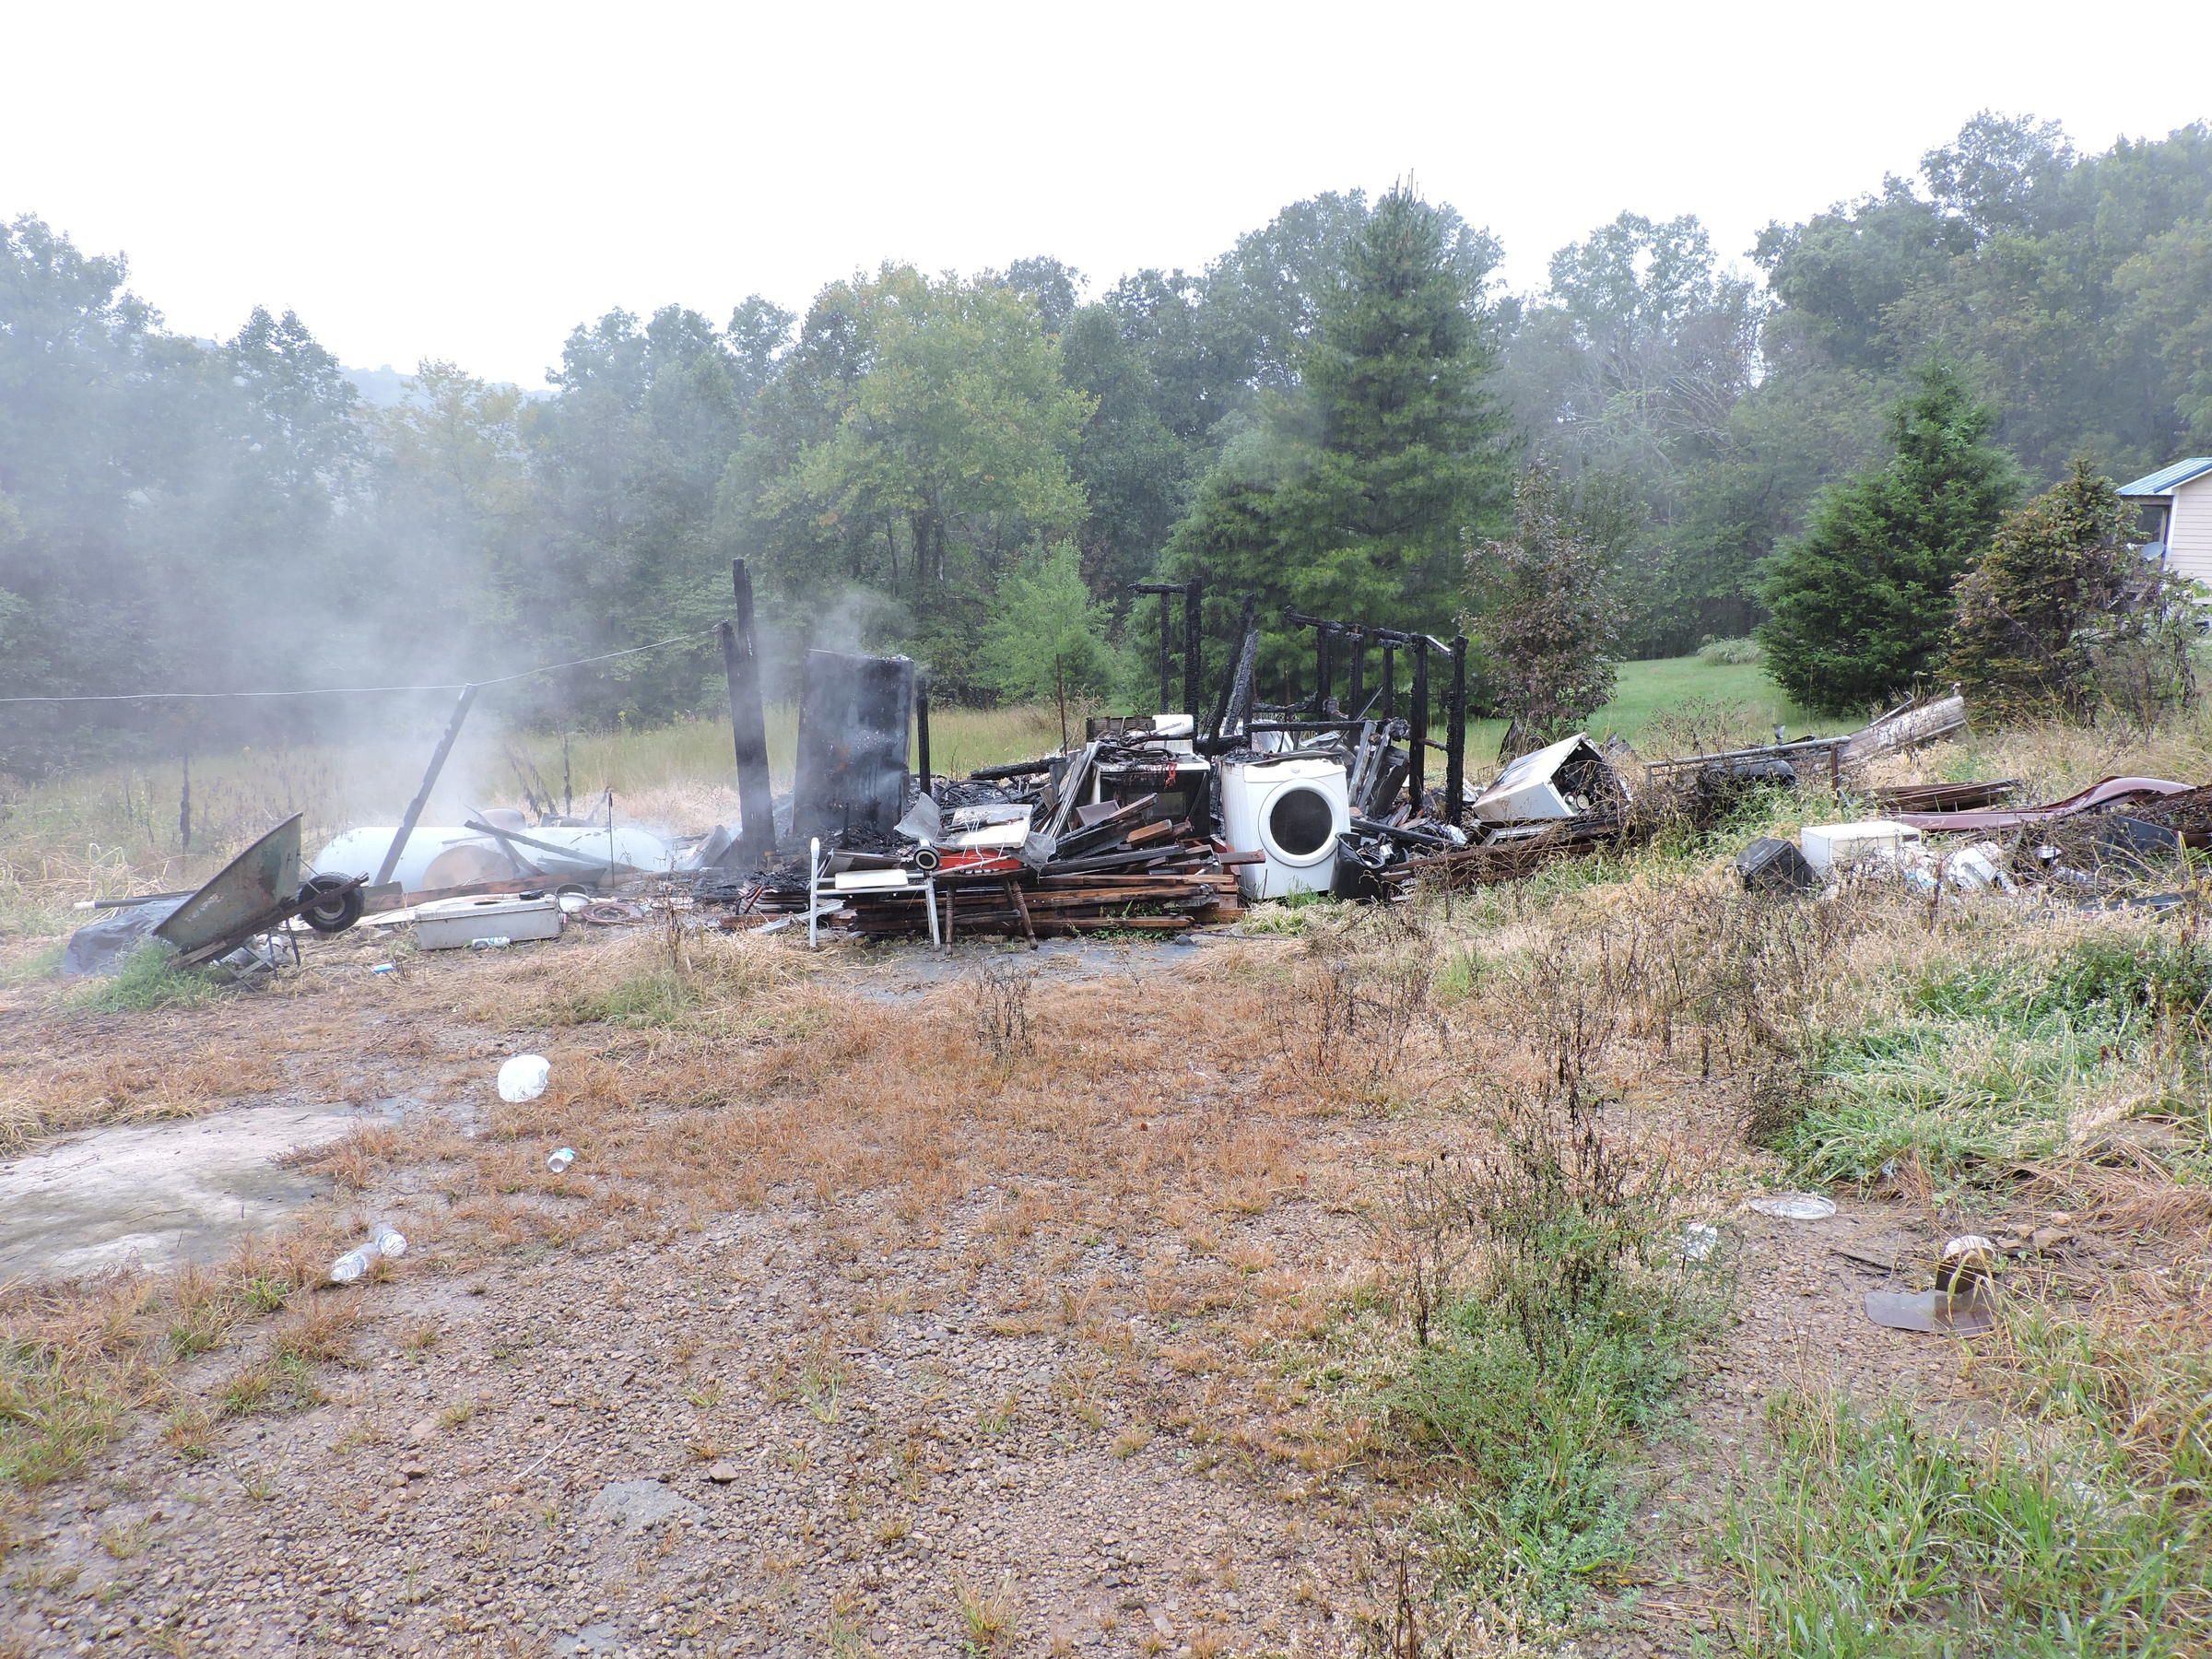 """Investigators have listed the cause of this fire and others as """"undetermined."""""""